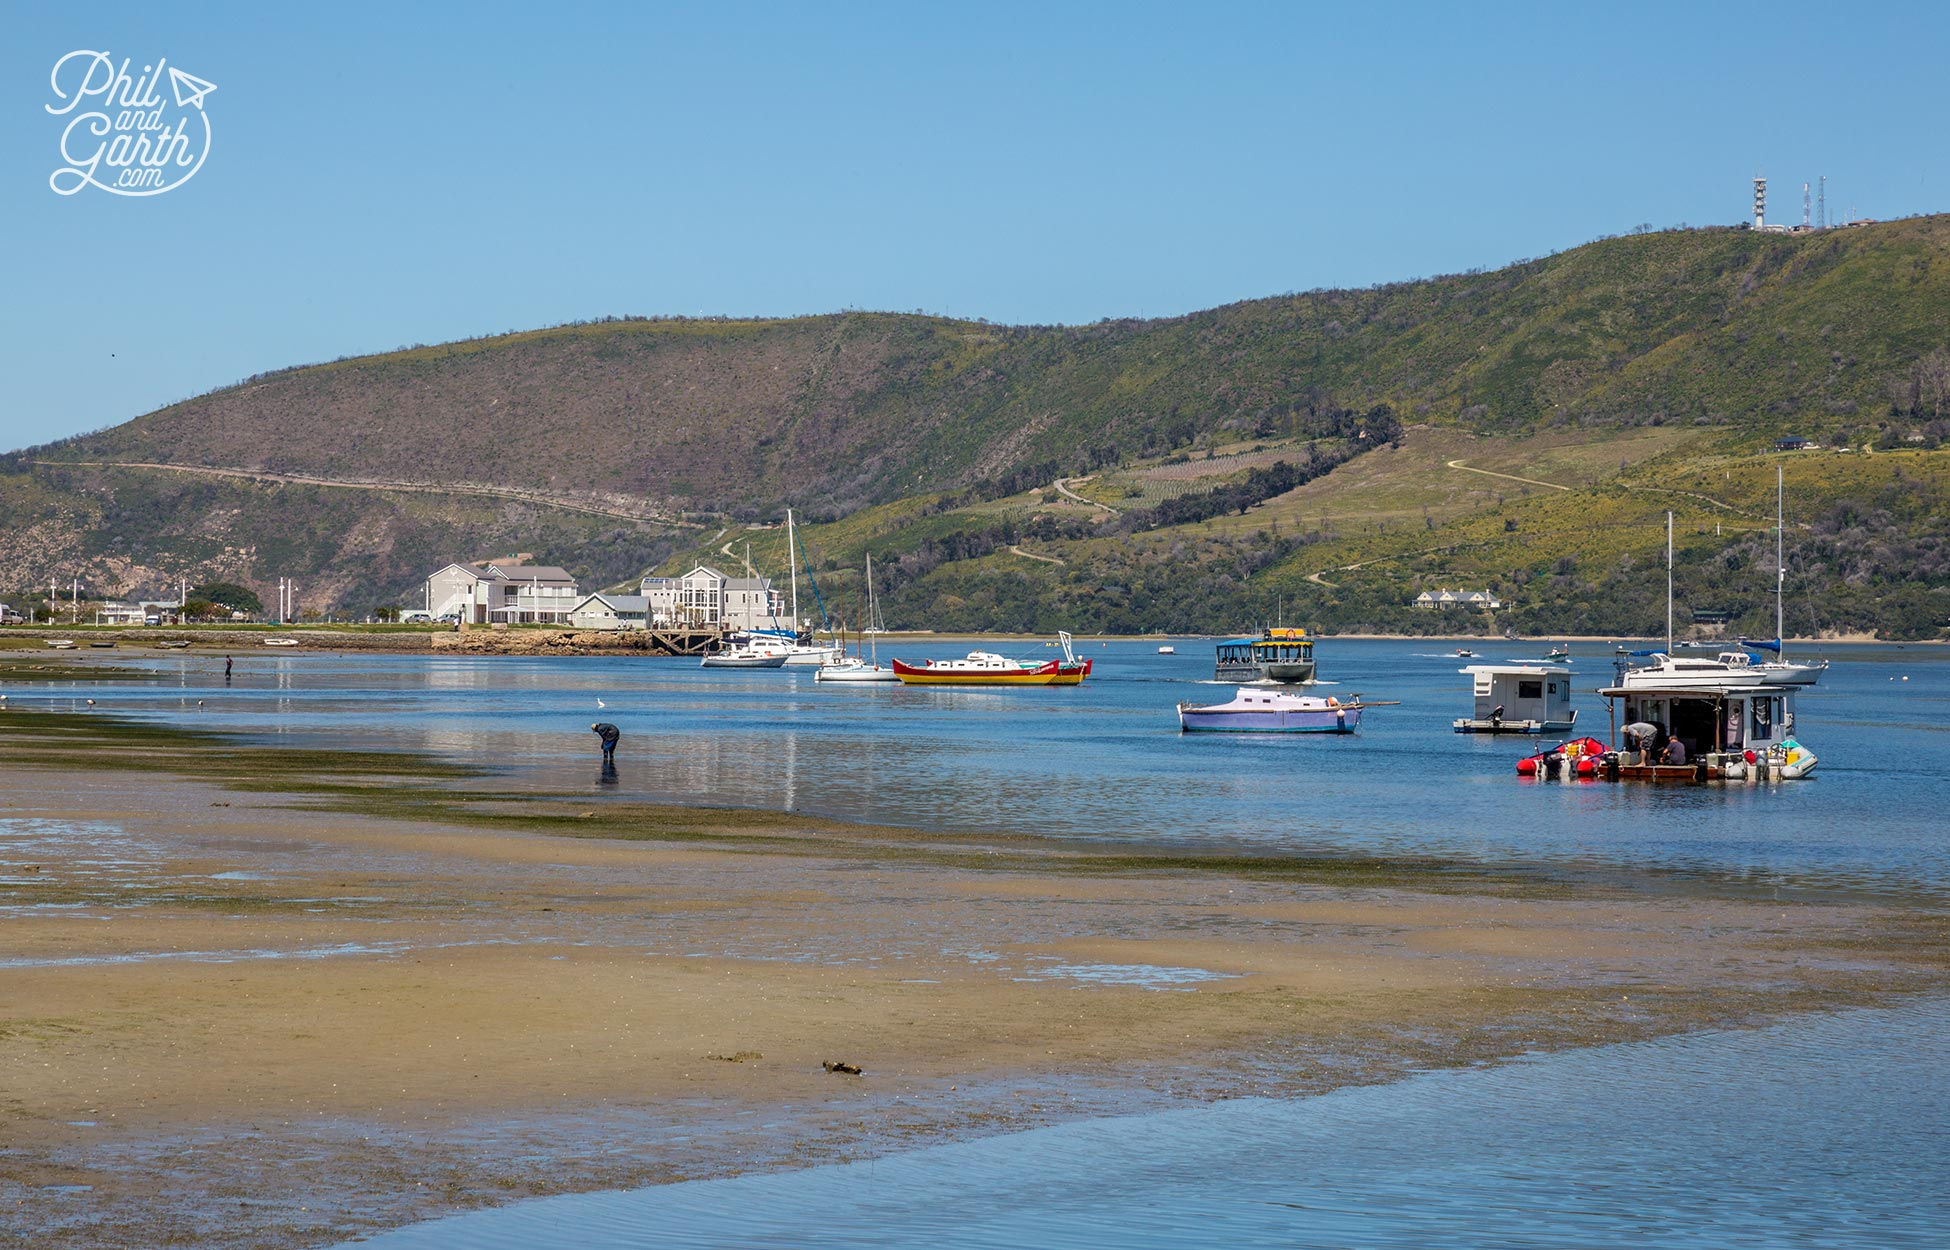 The Garden Route - Boats bob up and down in the lagoon